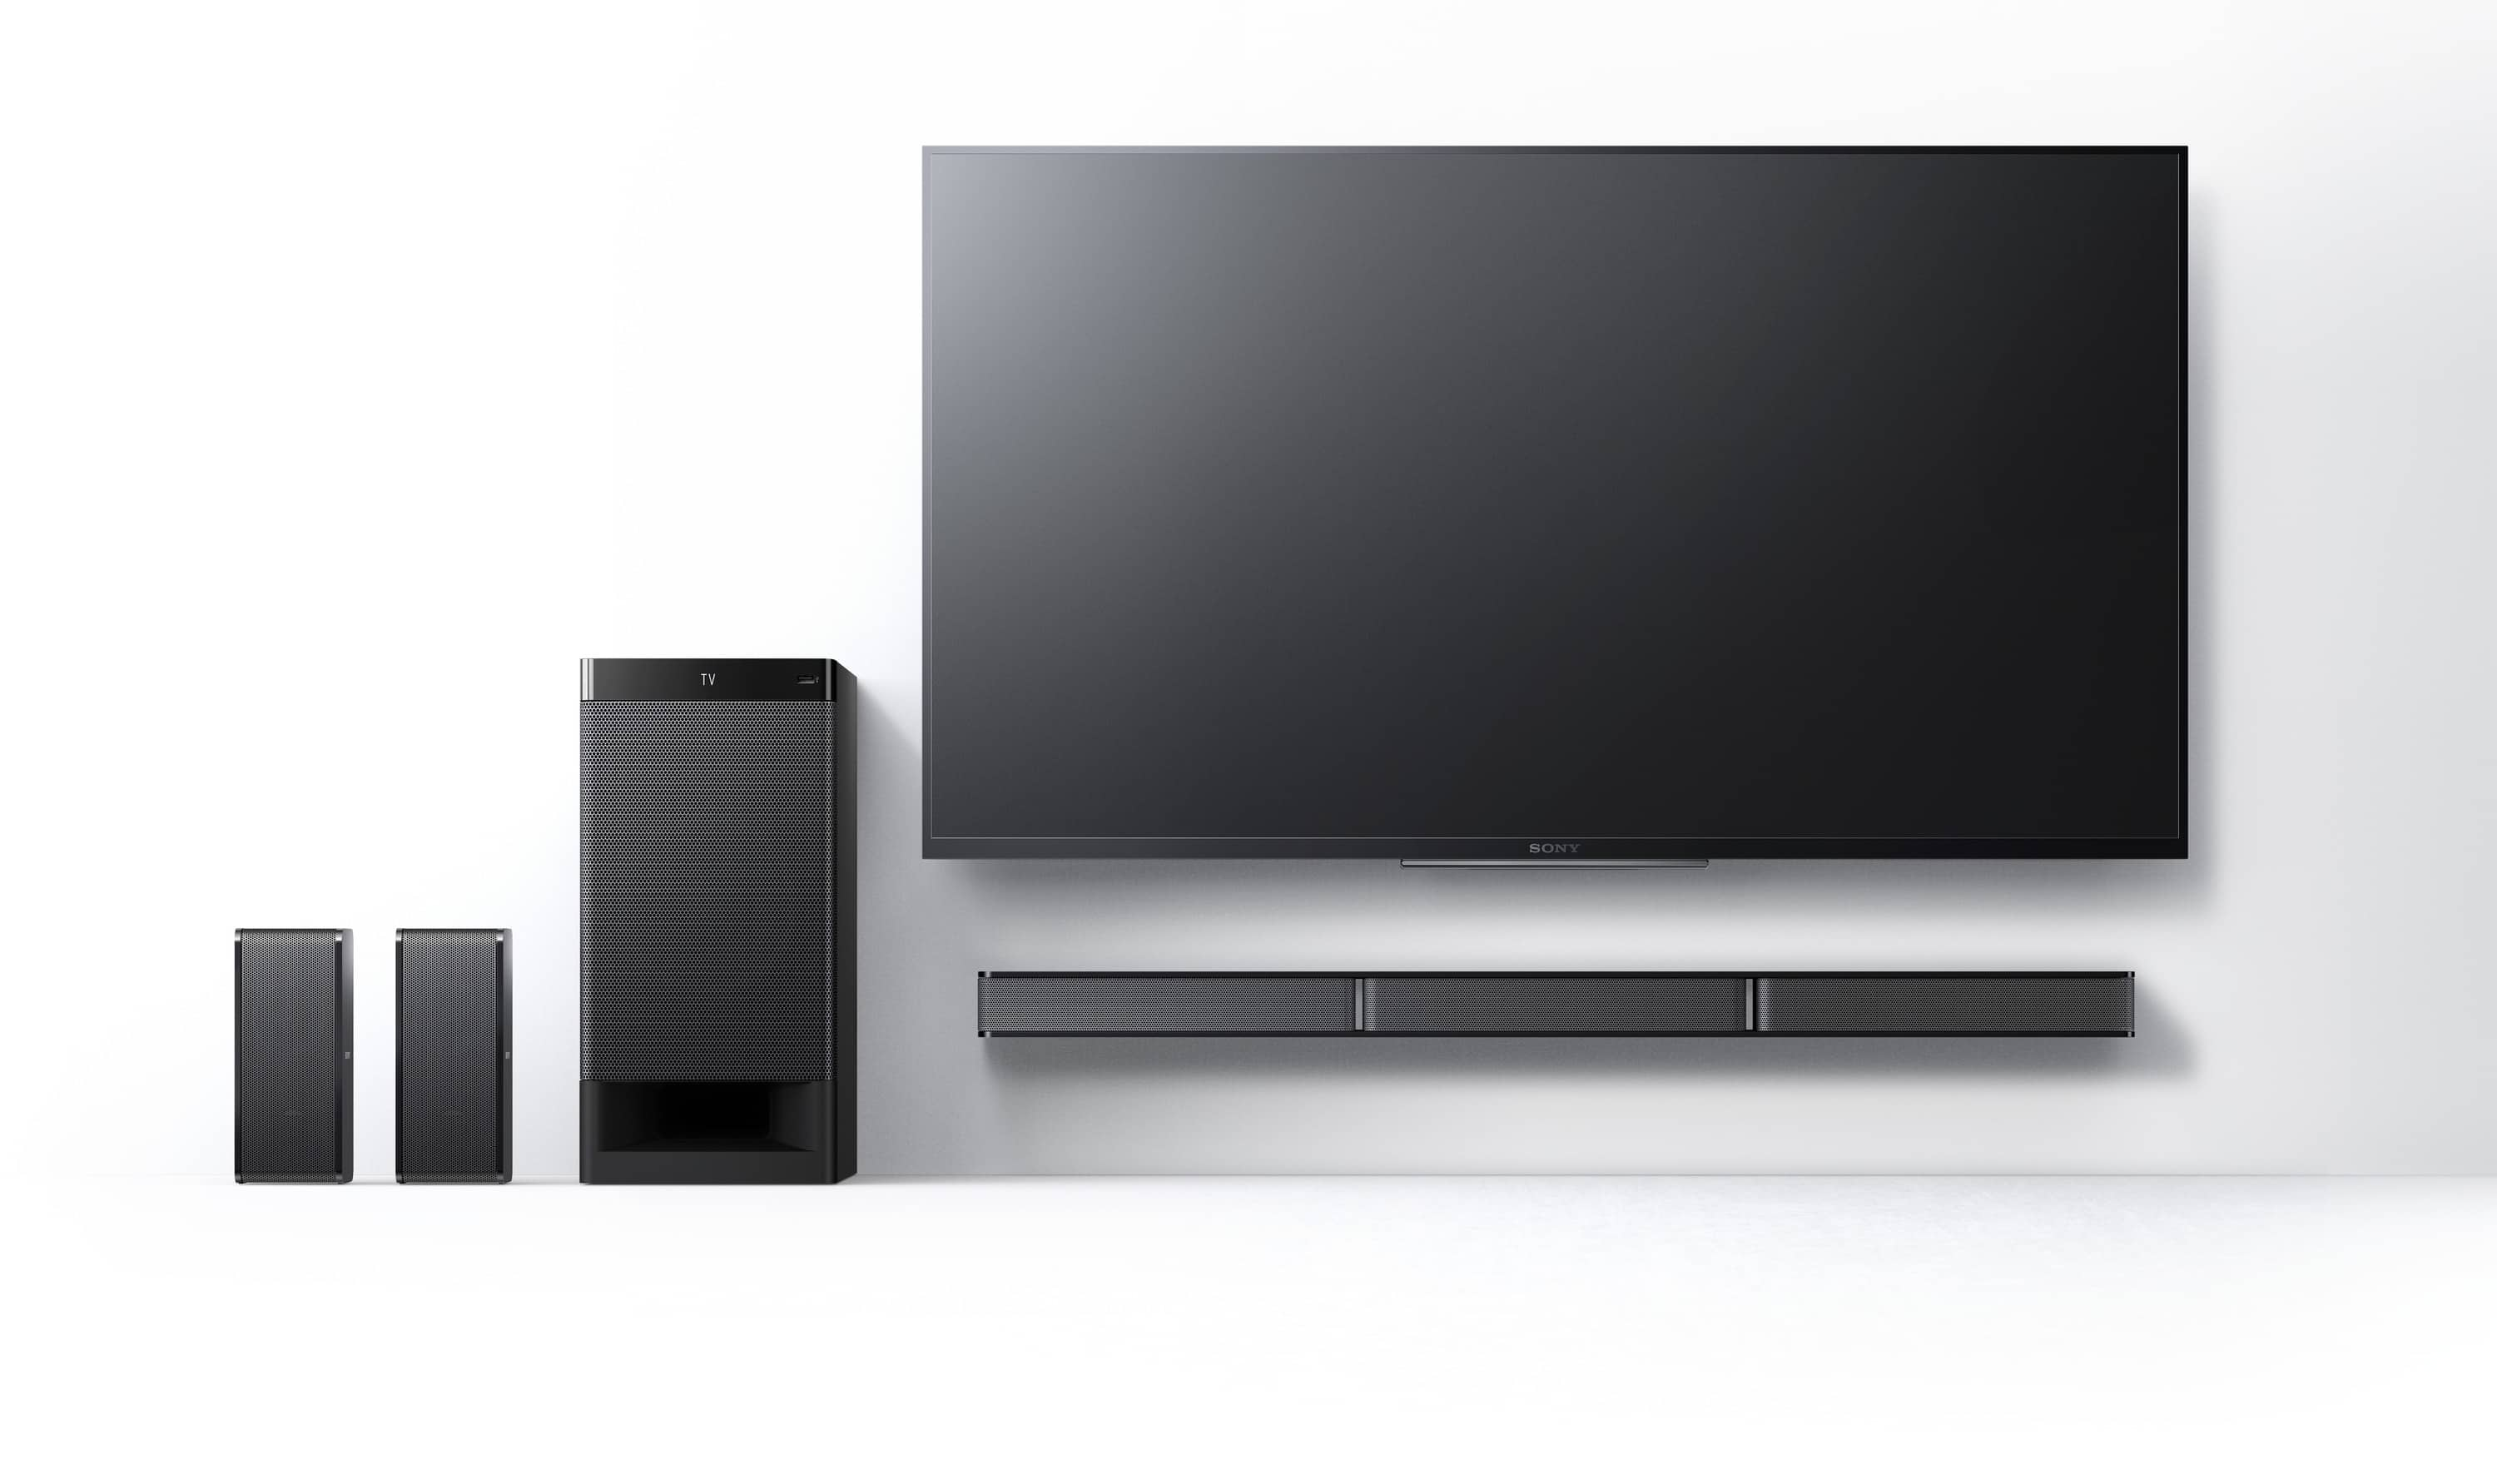 Sony HT-RT3 5.1 Home Theater Sound Bar with Subwoofer and Bluetooth $156.99